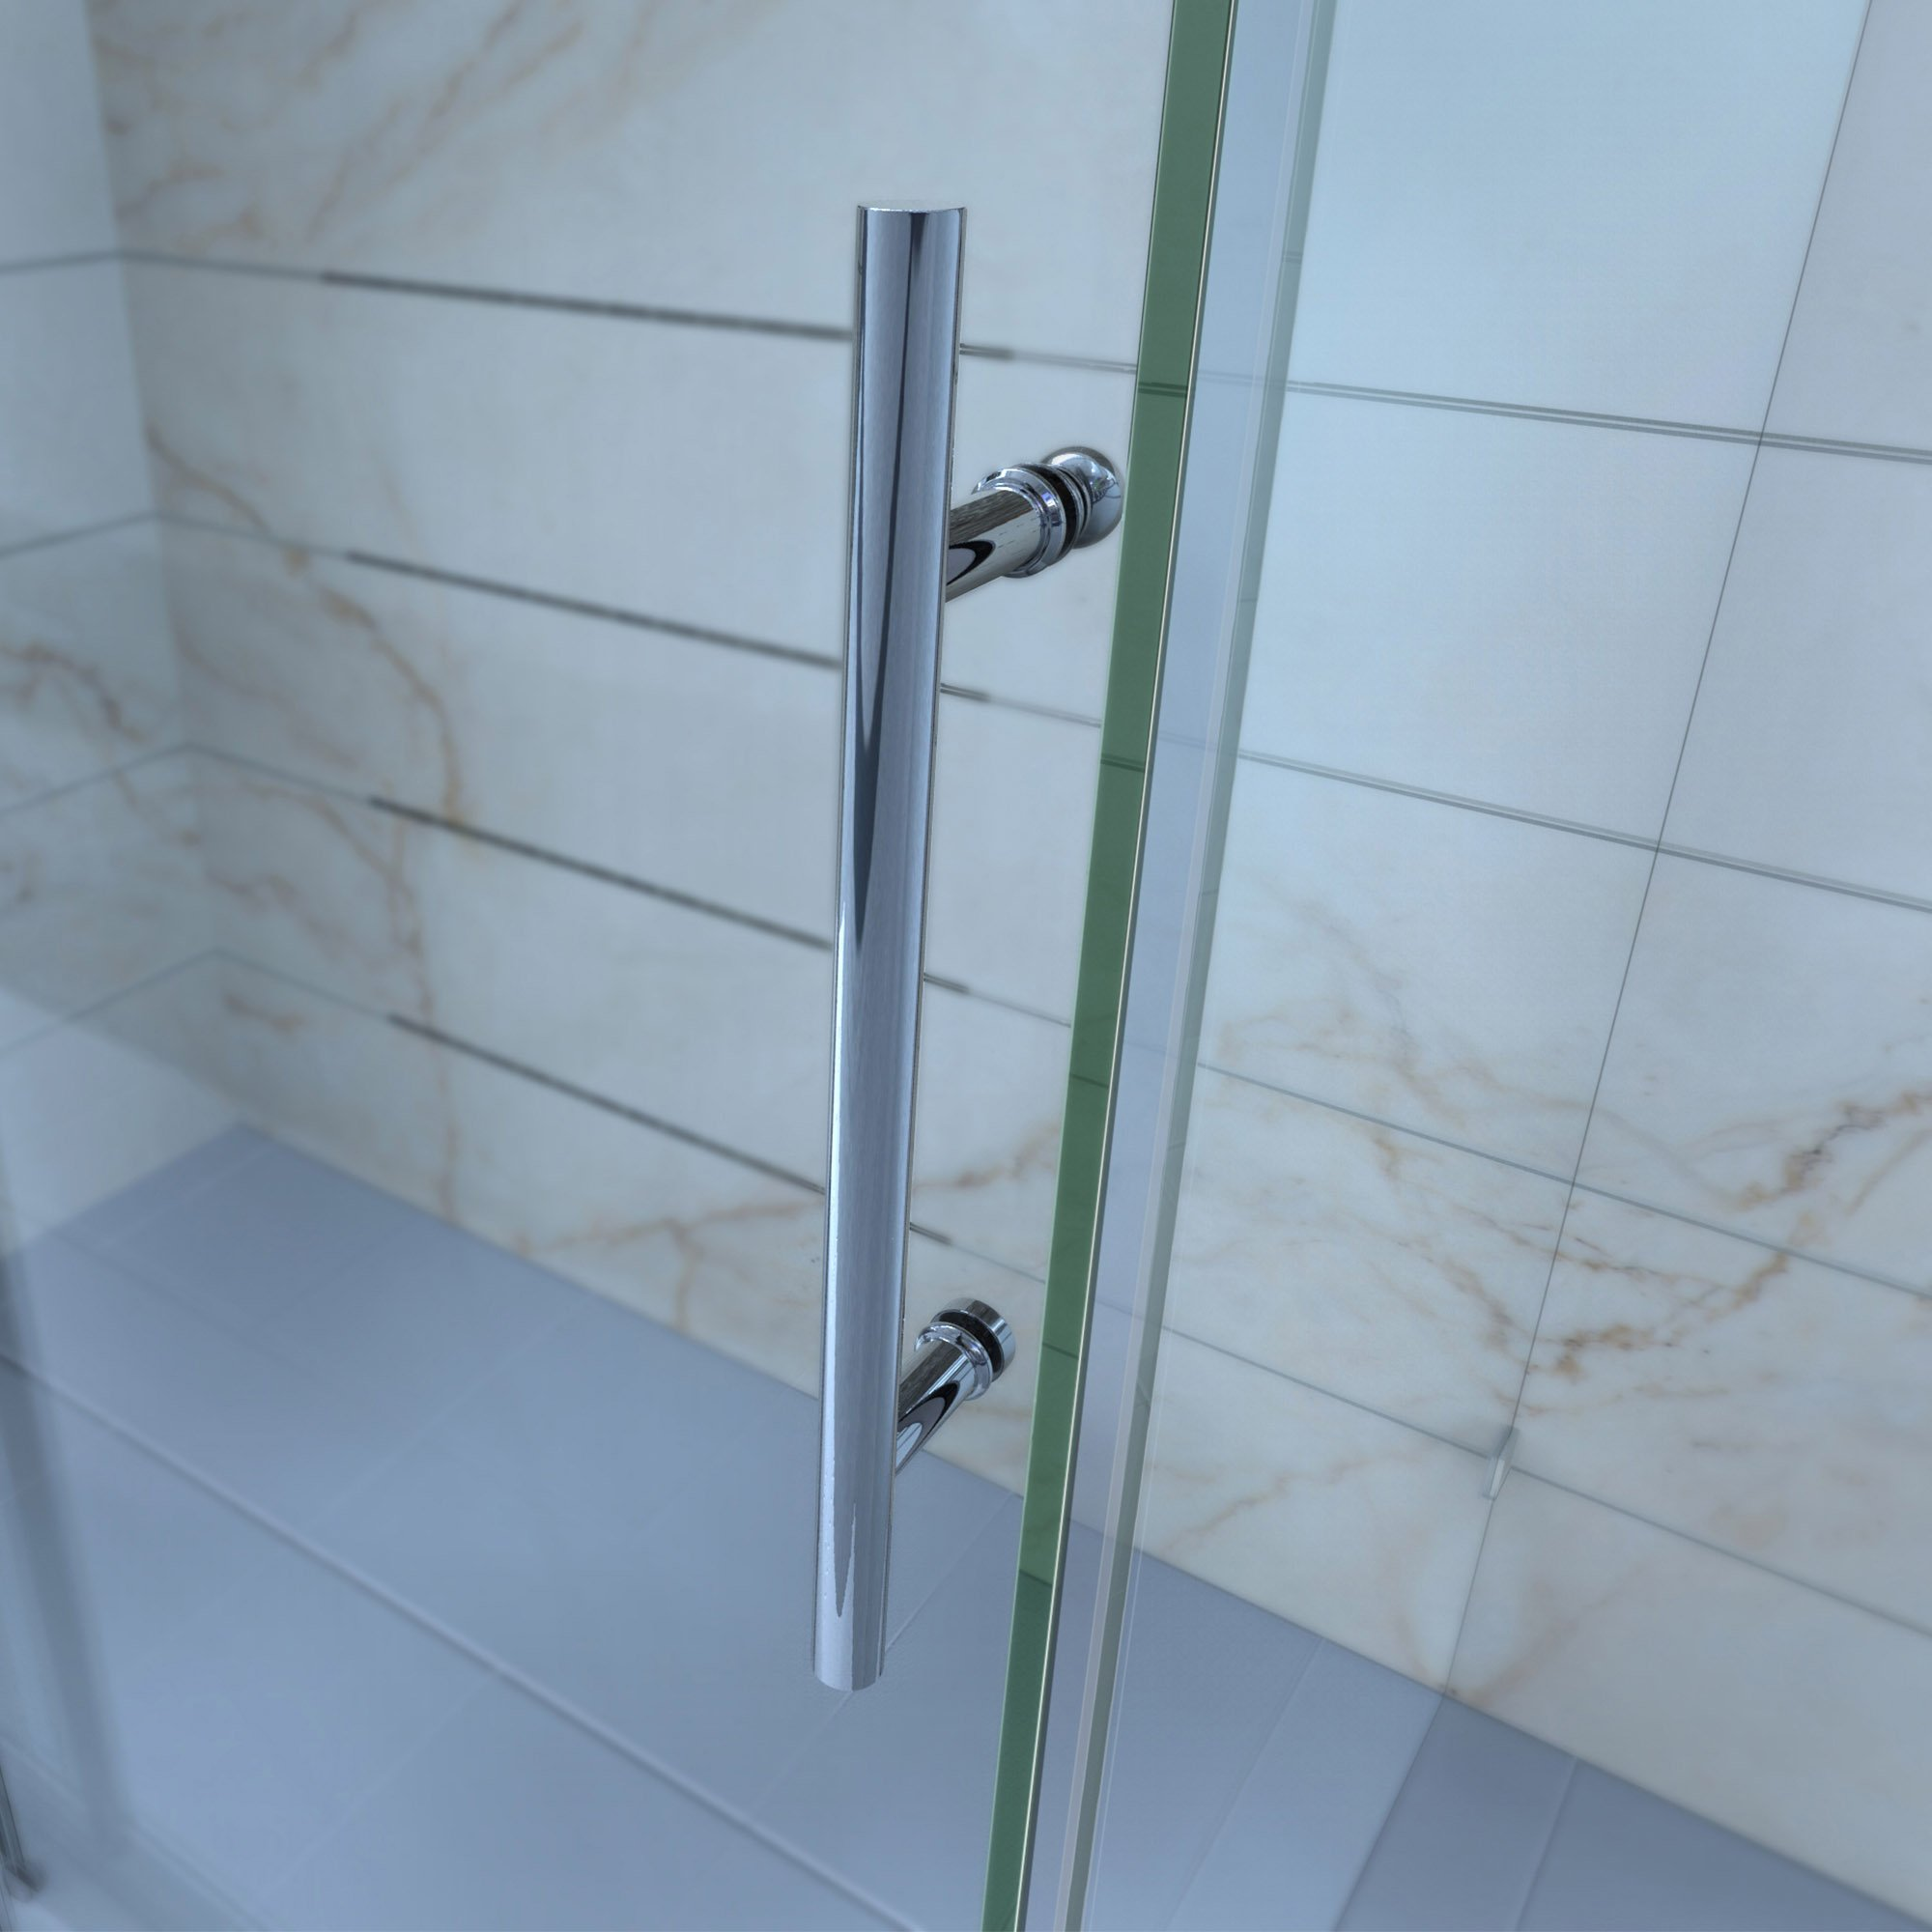 DreamLine Enigma-X 55-59 in. W x 62 in. H Fully Frameless Sliding Tub Door in Polished Stainless Steel, SHDR-61606210-08 by DreamLine (Image #11)